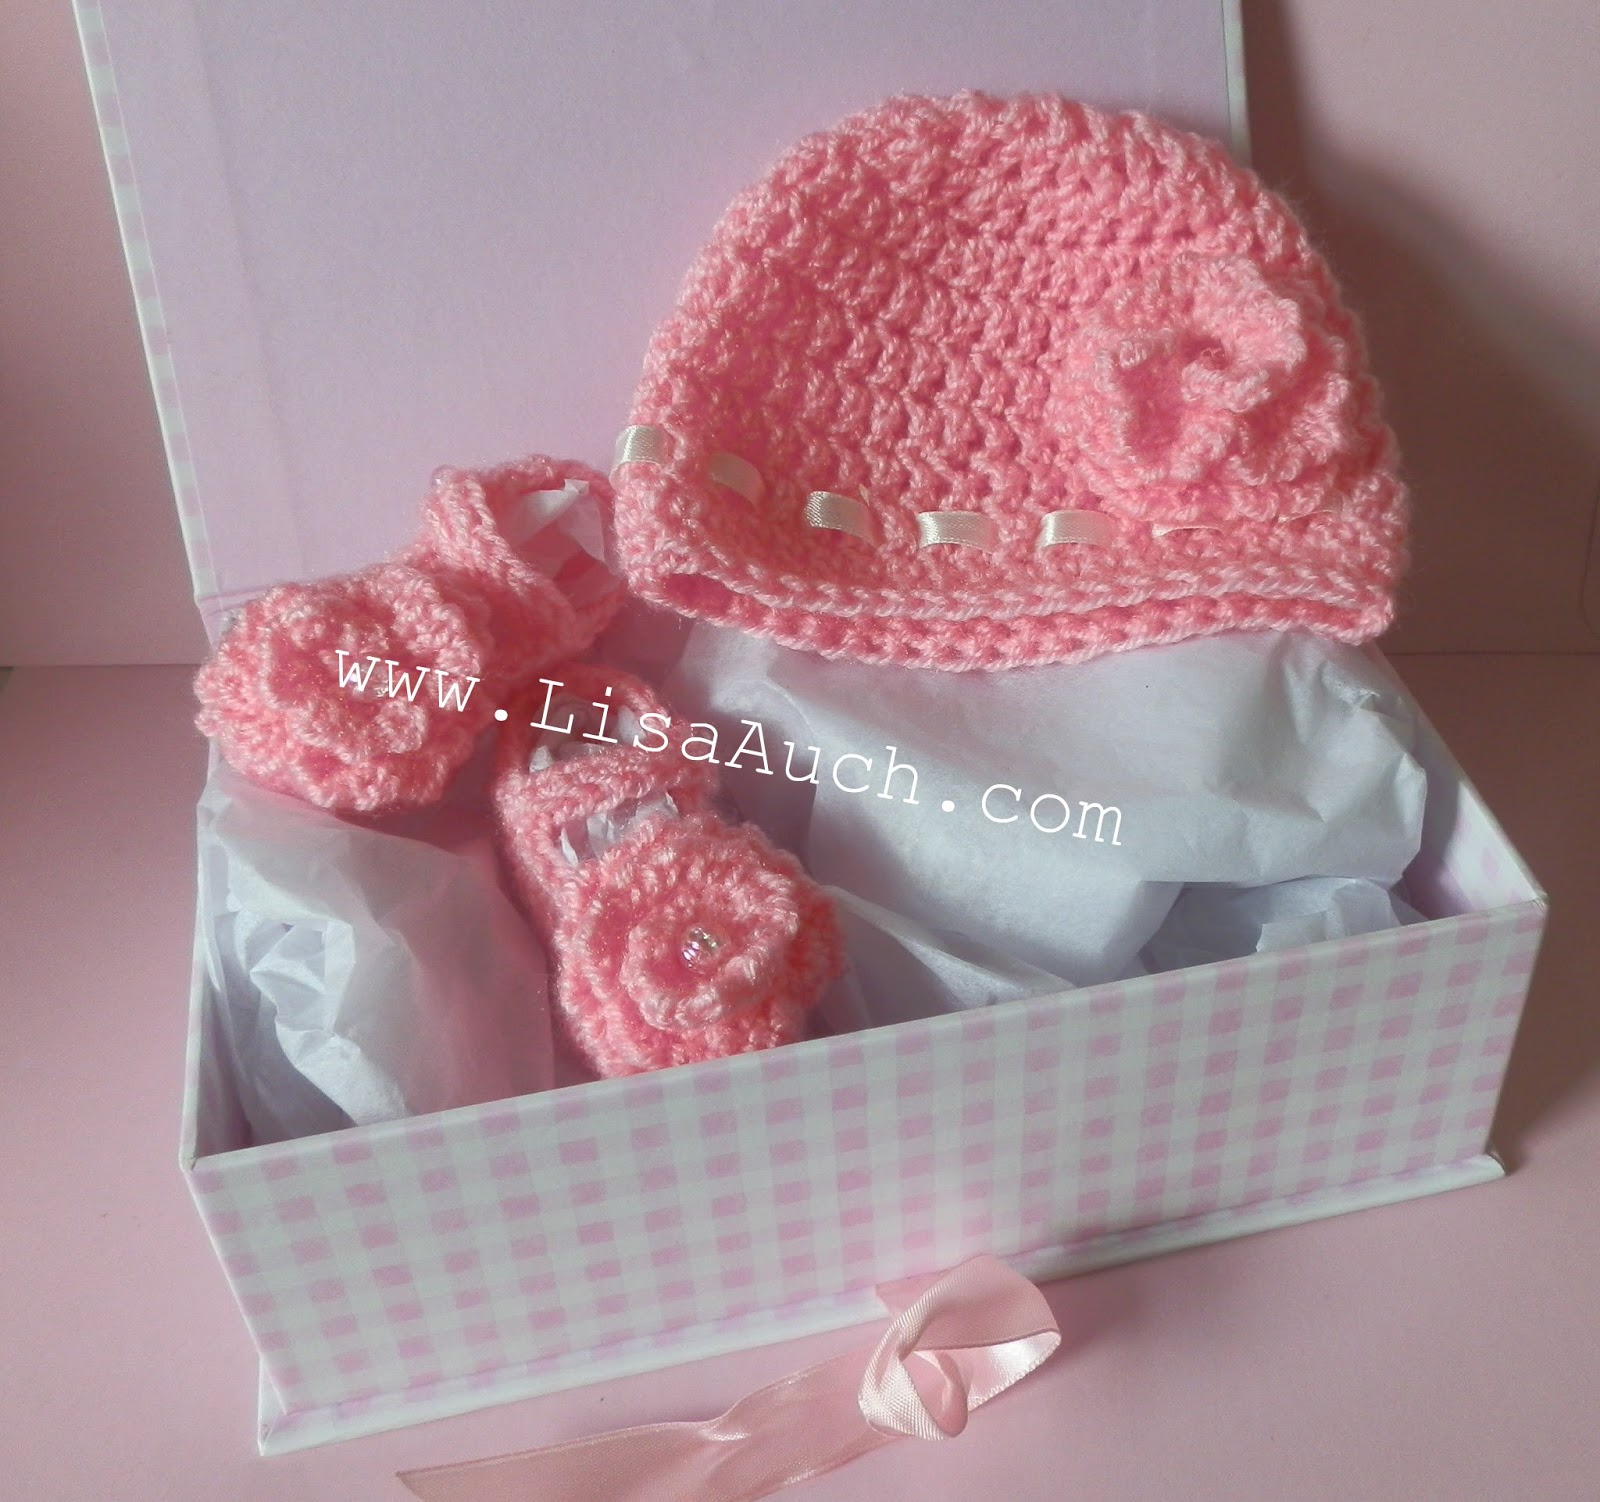 Free crochet patterns for baby hat and baby bootee shoes set free crochet patterns crochet hat pattern baby hat crochet pattern bankloansurffo Choice Image